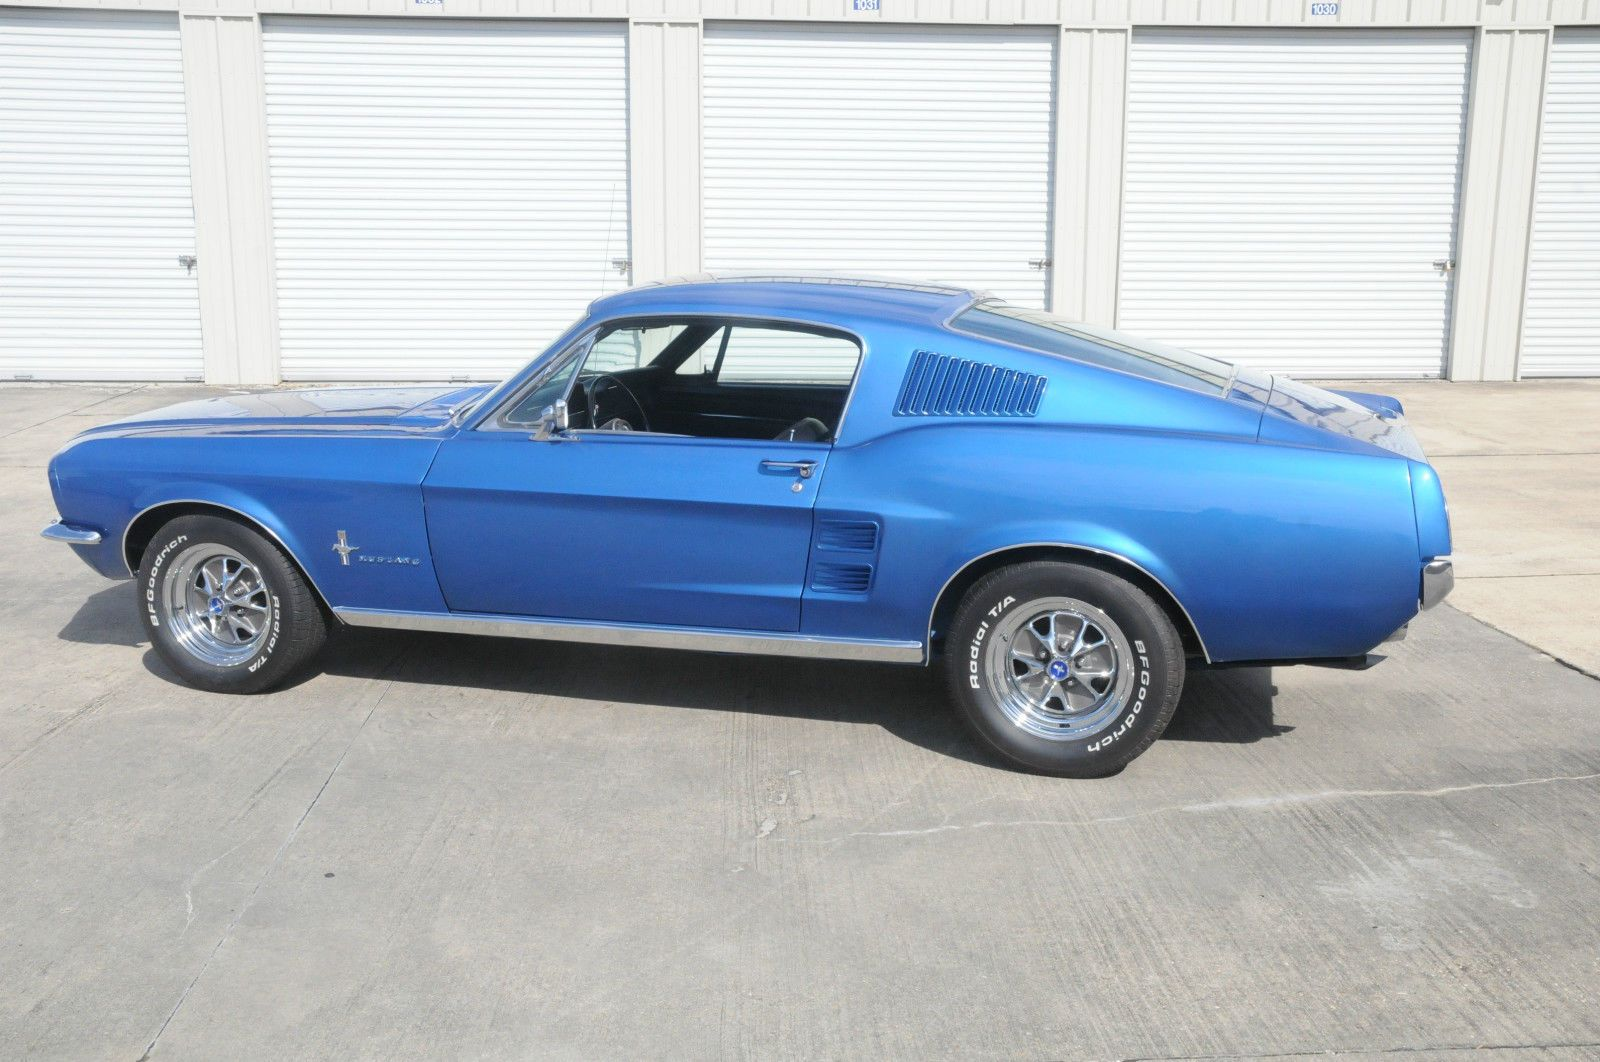 1967 Acapulco Blue Mustang Fastback Blue Mustang Mustang Fastback Mustang